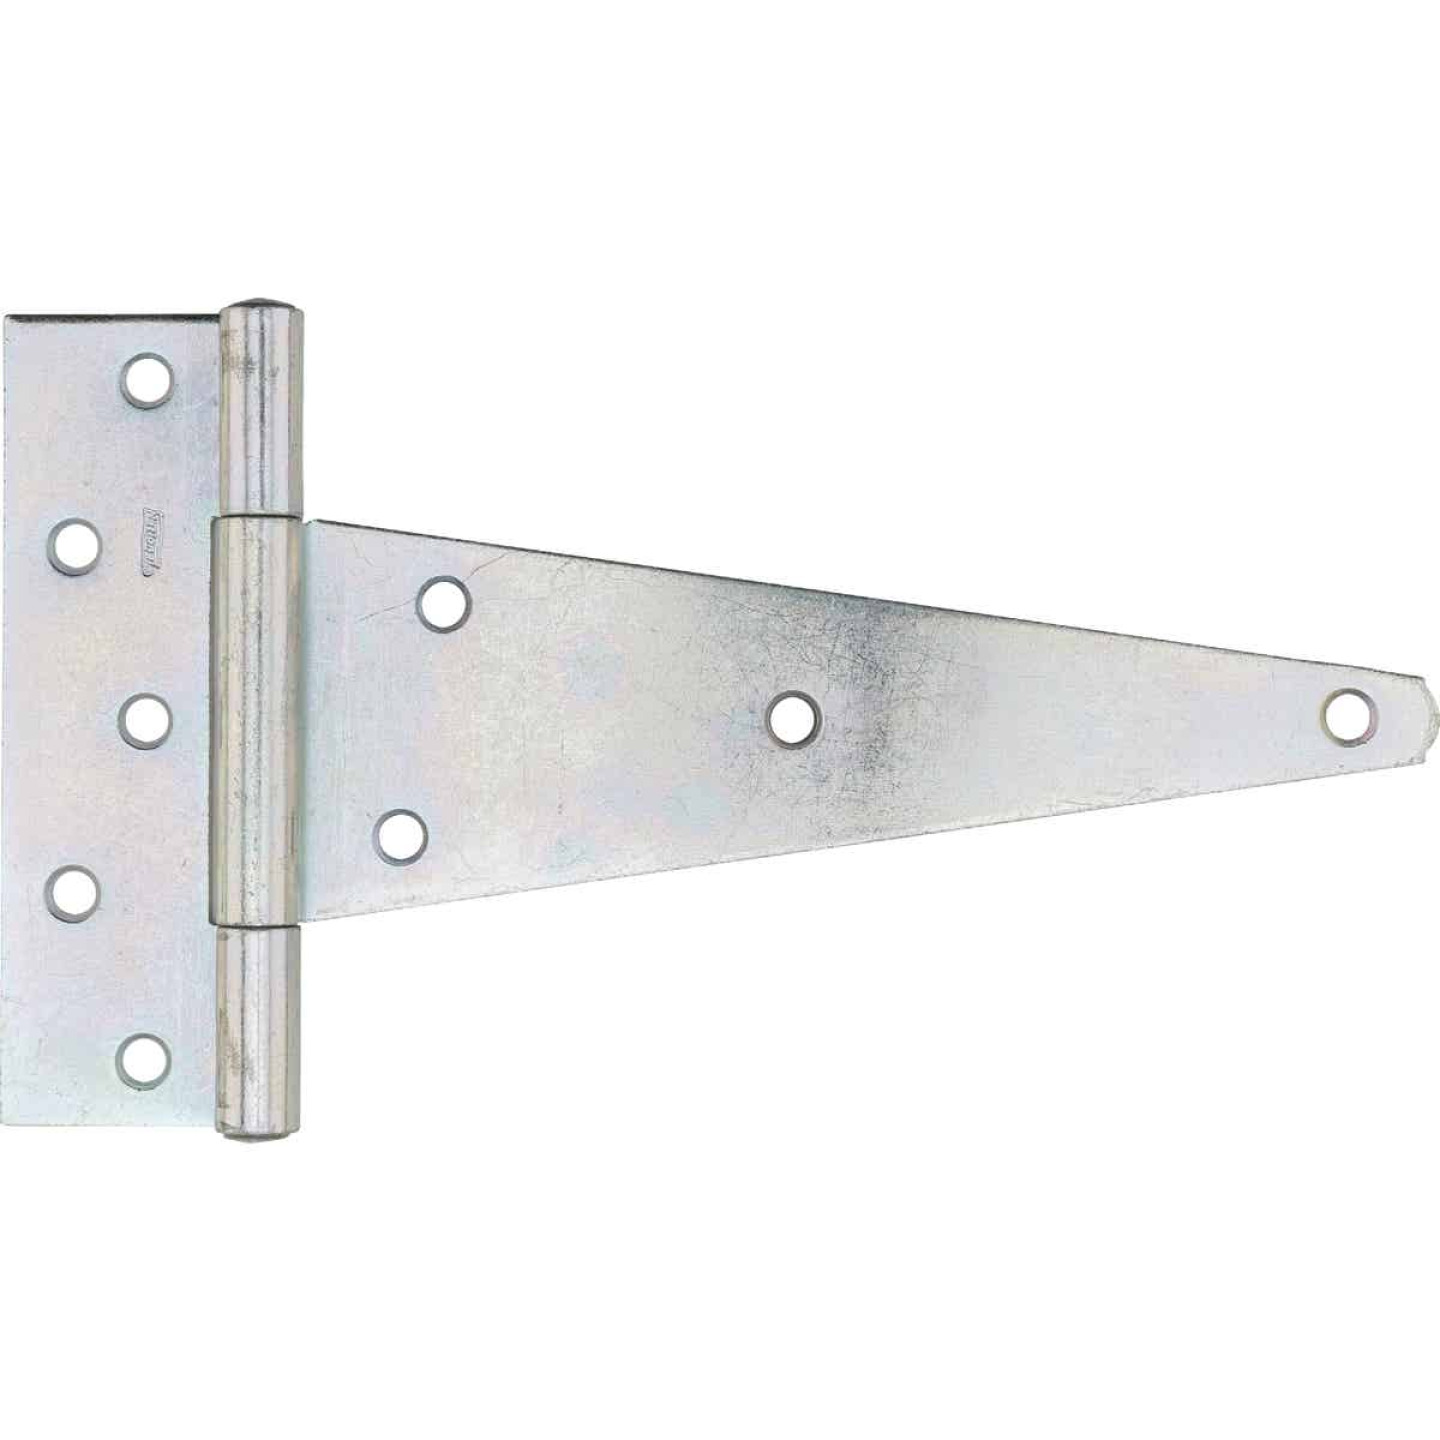 National 10 In. Zinc-Plated Steel Heavy-Duty Tee Hinge Image 1